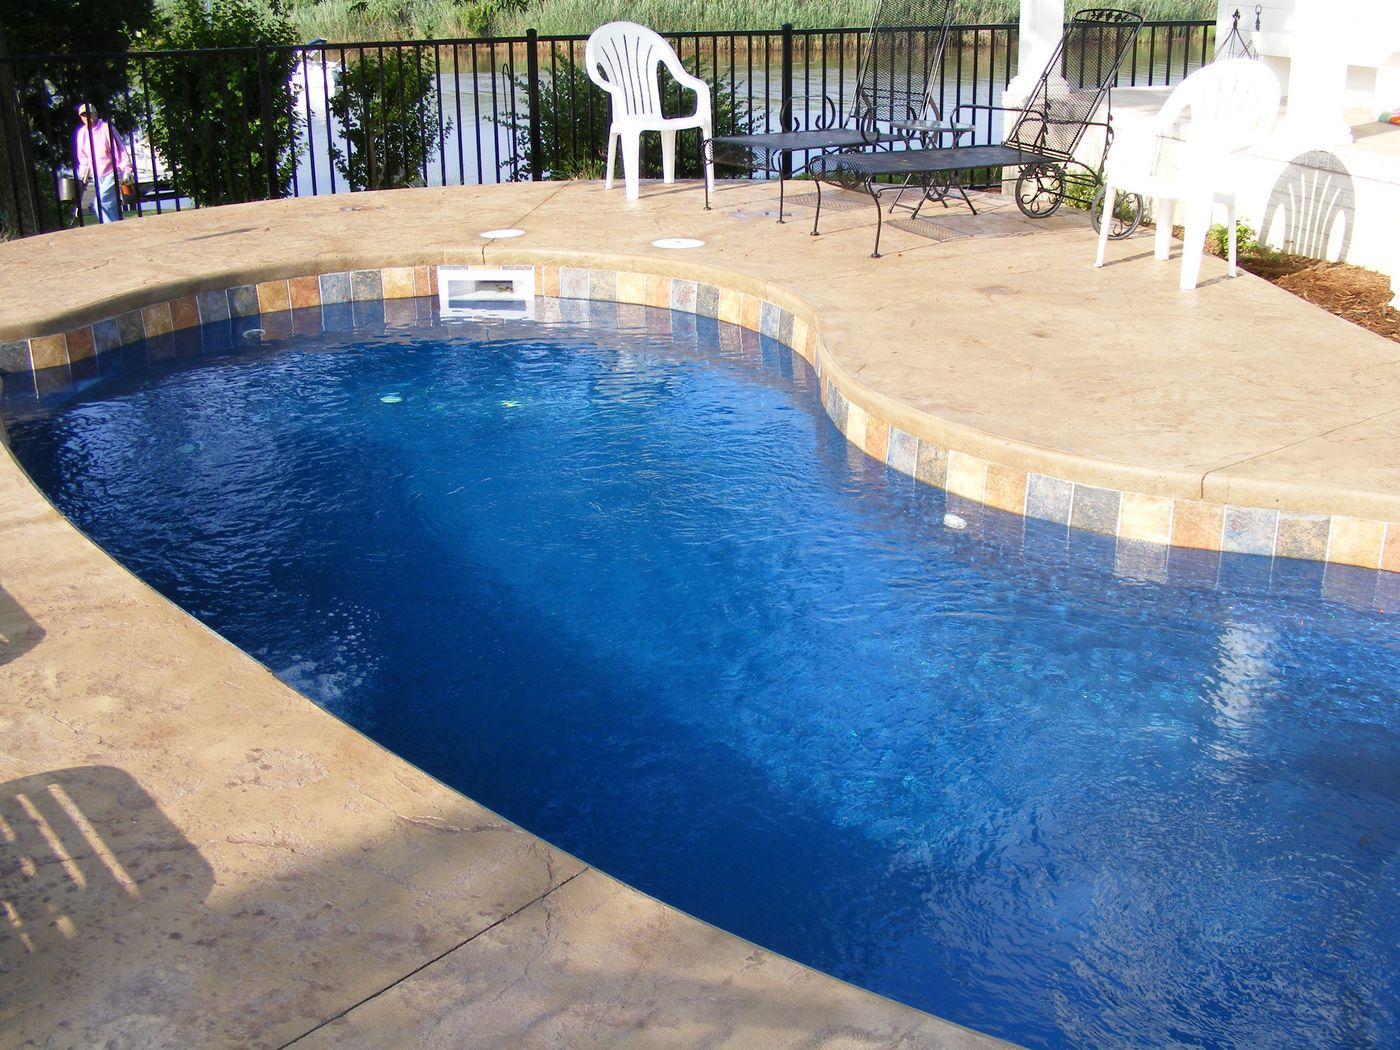 Fiberglass Pool Coping Paver Vs Cantilevered Concrete Quick Comparison